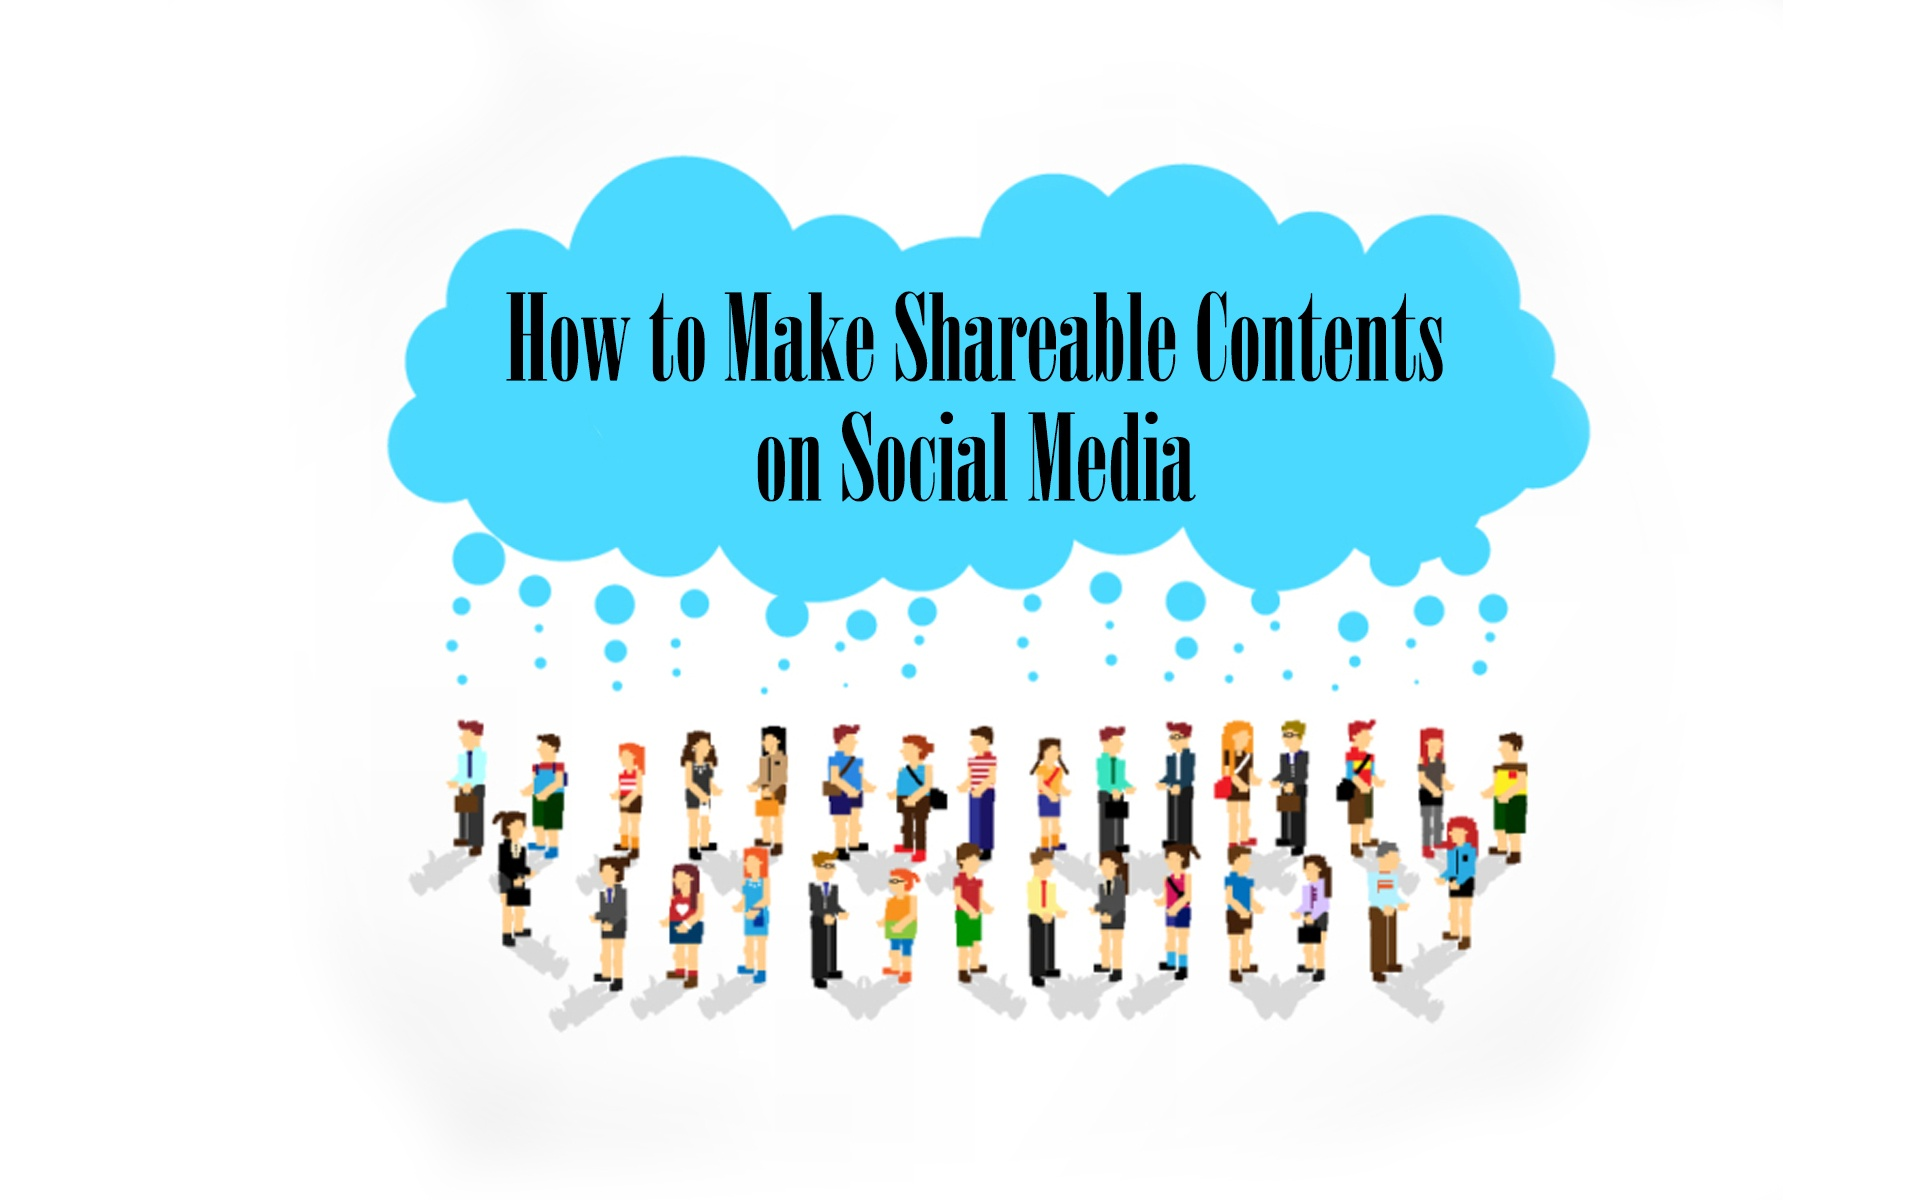 How to Make Shareable Contents on Social Media